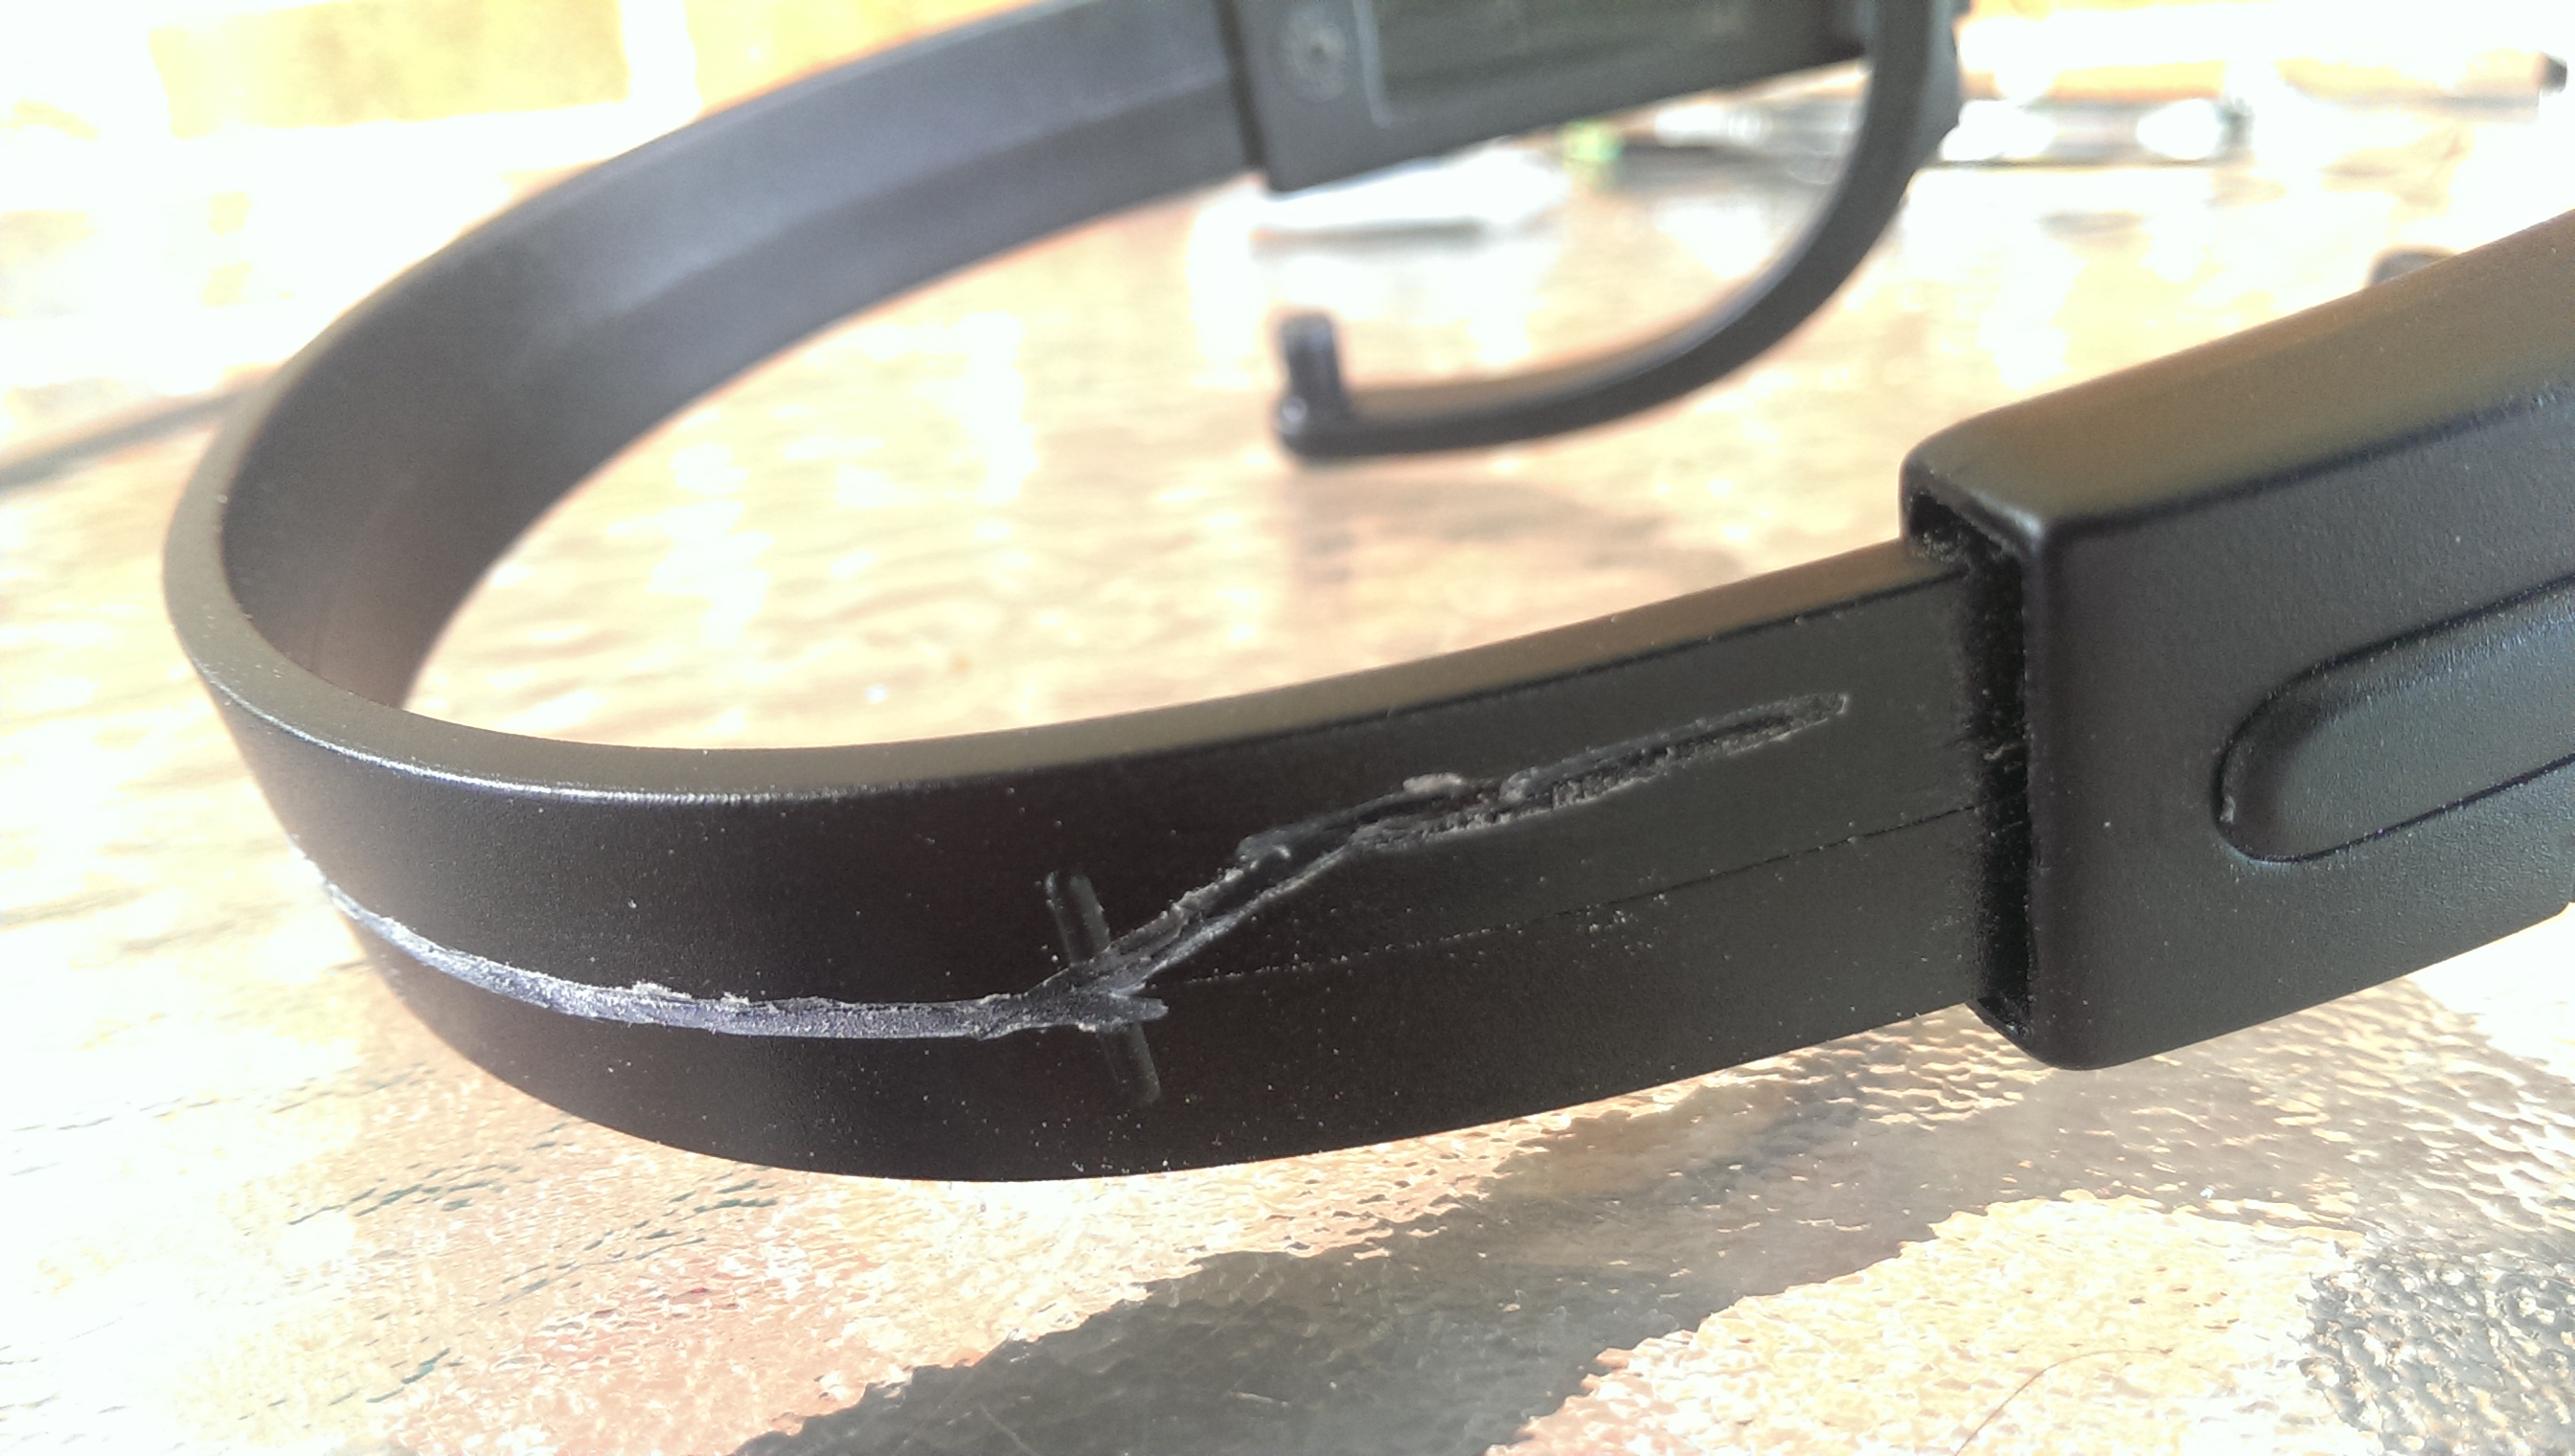 Picture of I Used a Rotary Tool on the Headband to Etch Out a Small Channel for the Speaker Wire.